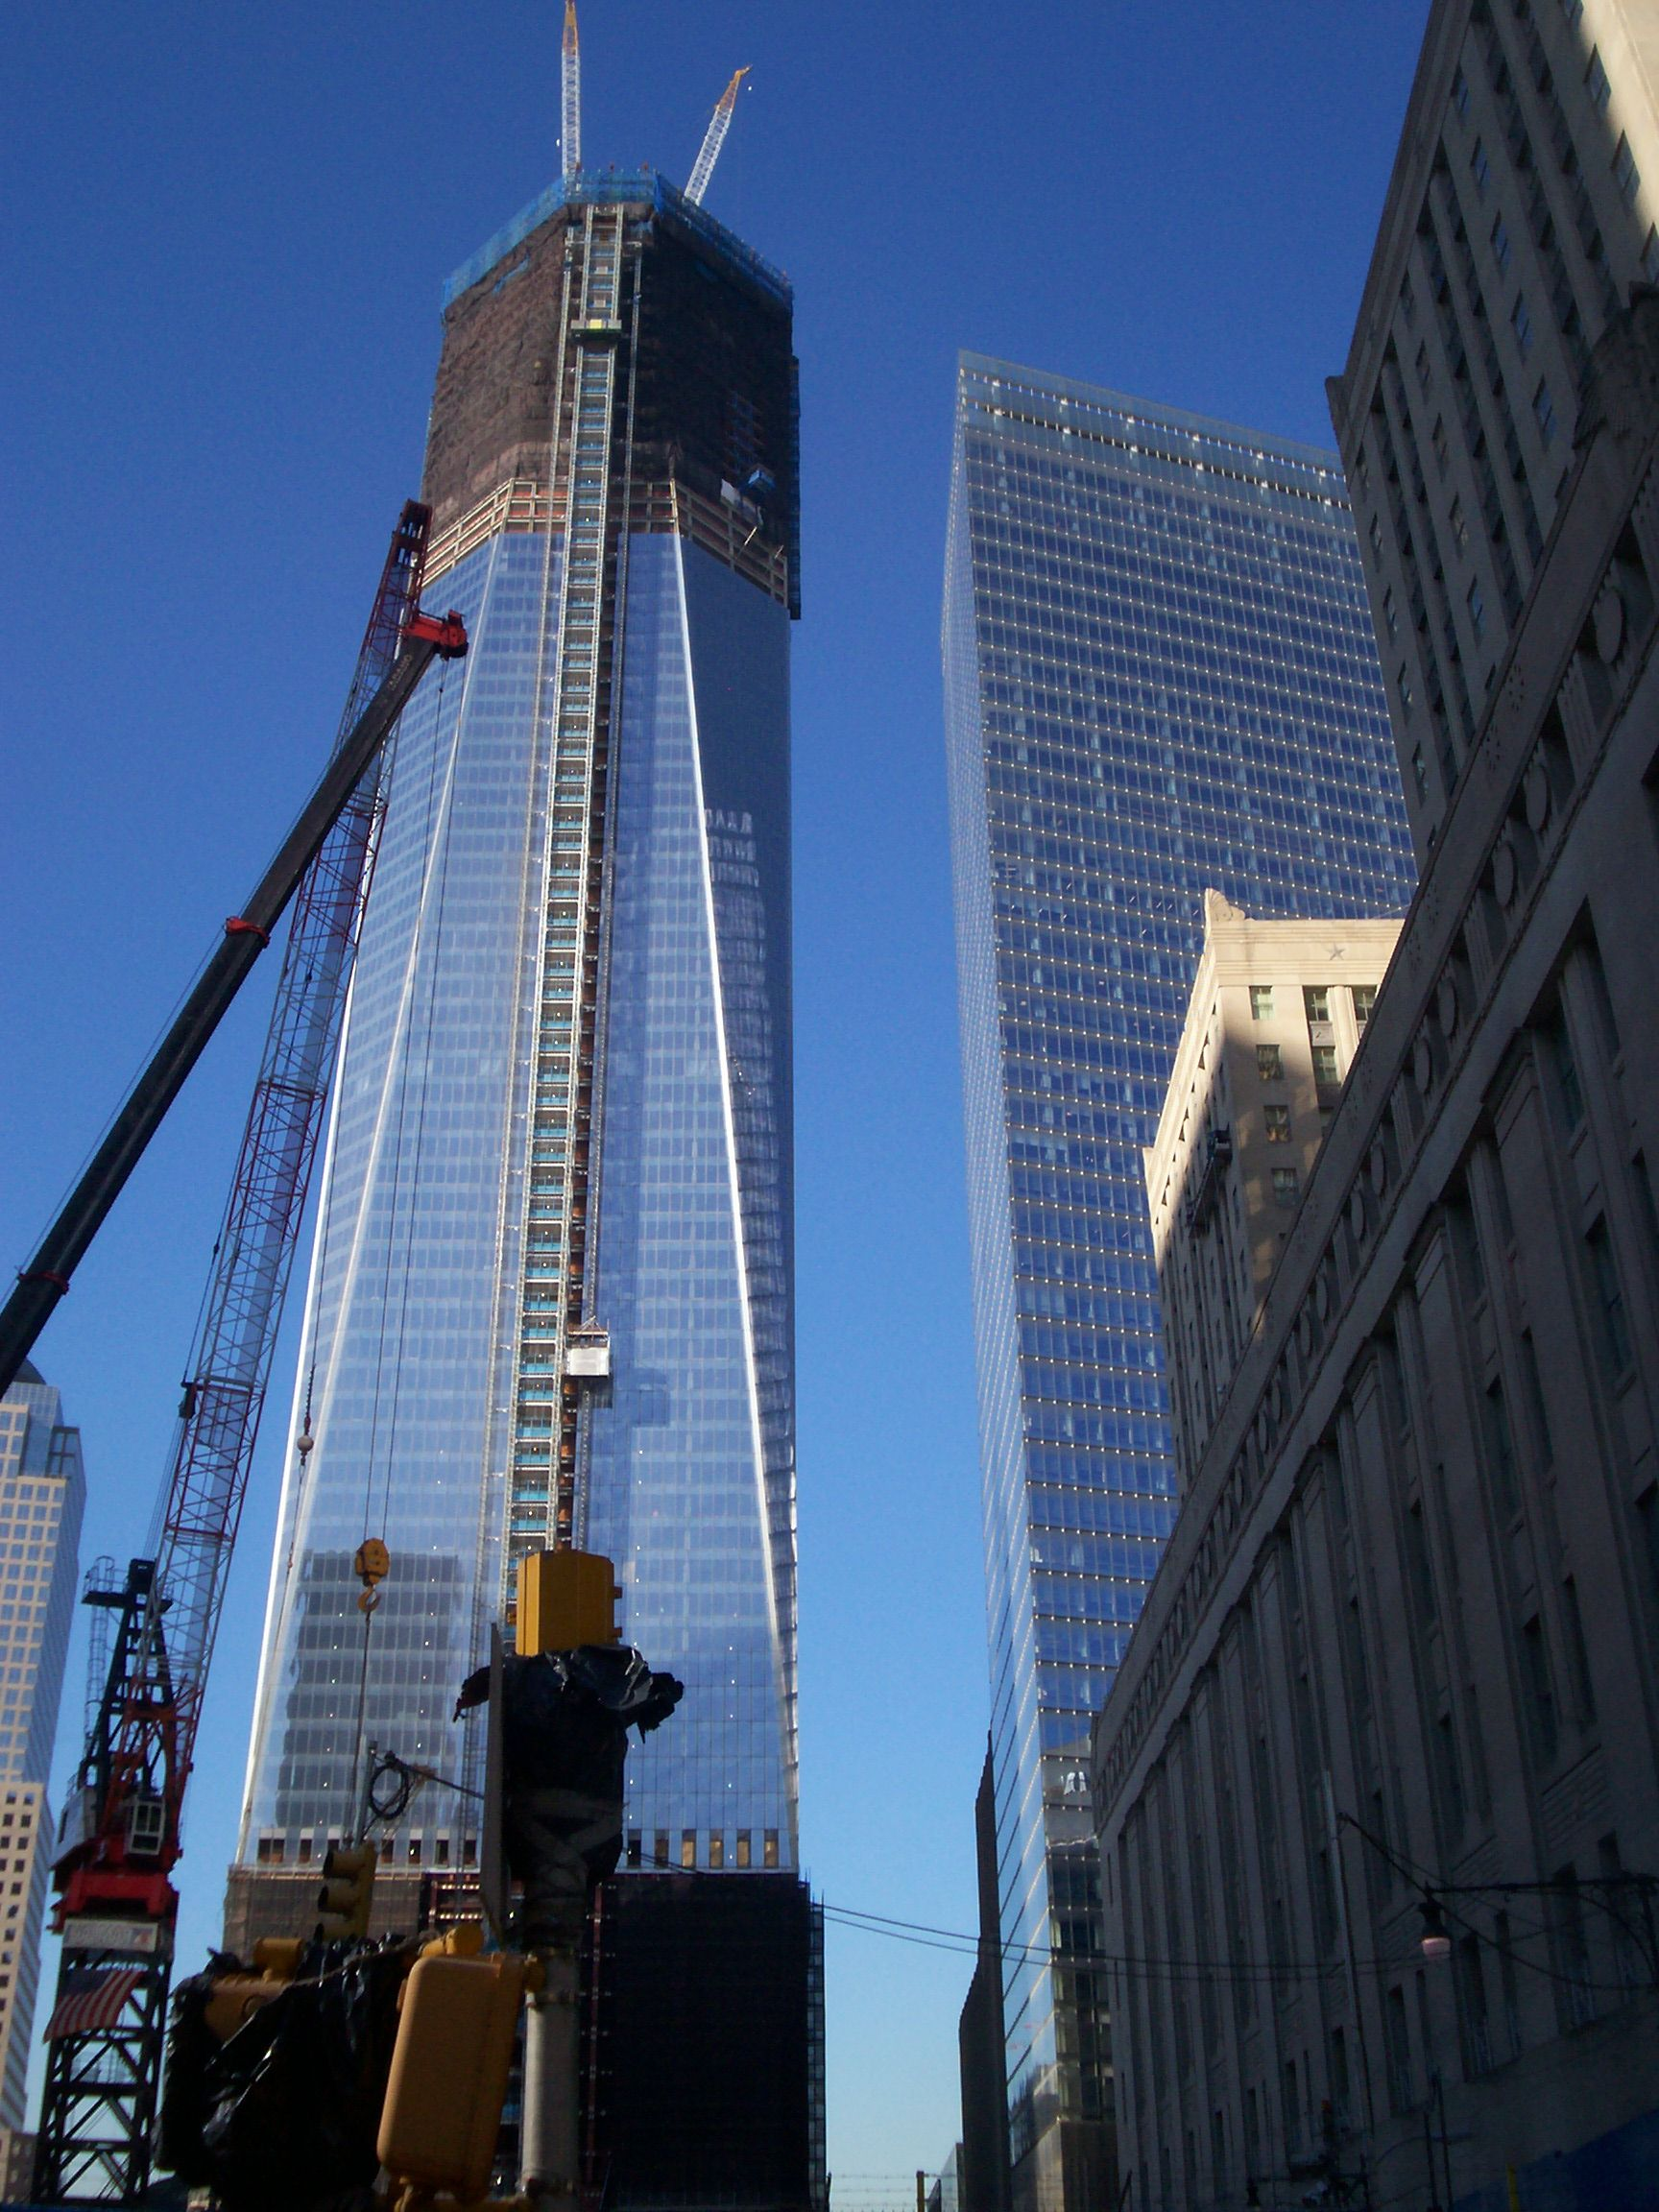 The Freedom Tower Being Built In New York It Was An Awesome Sight The Freedom Tower Tower Building